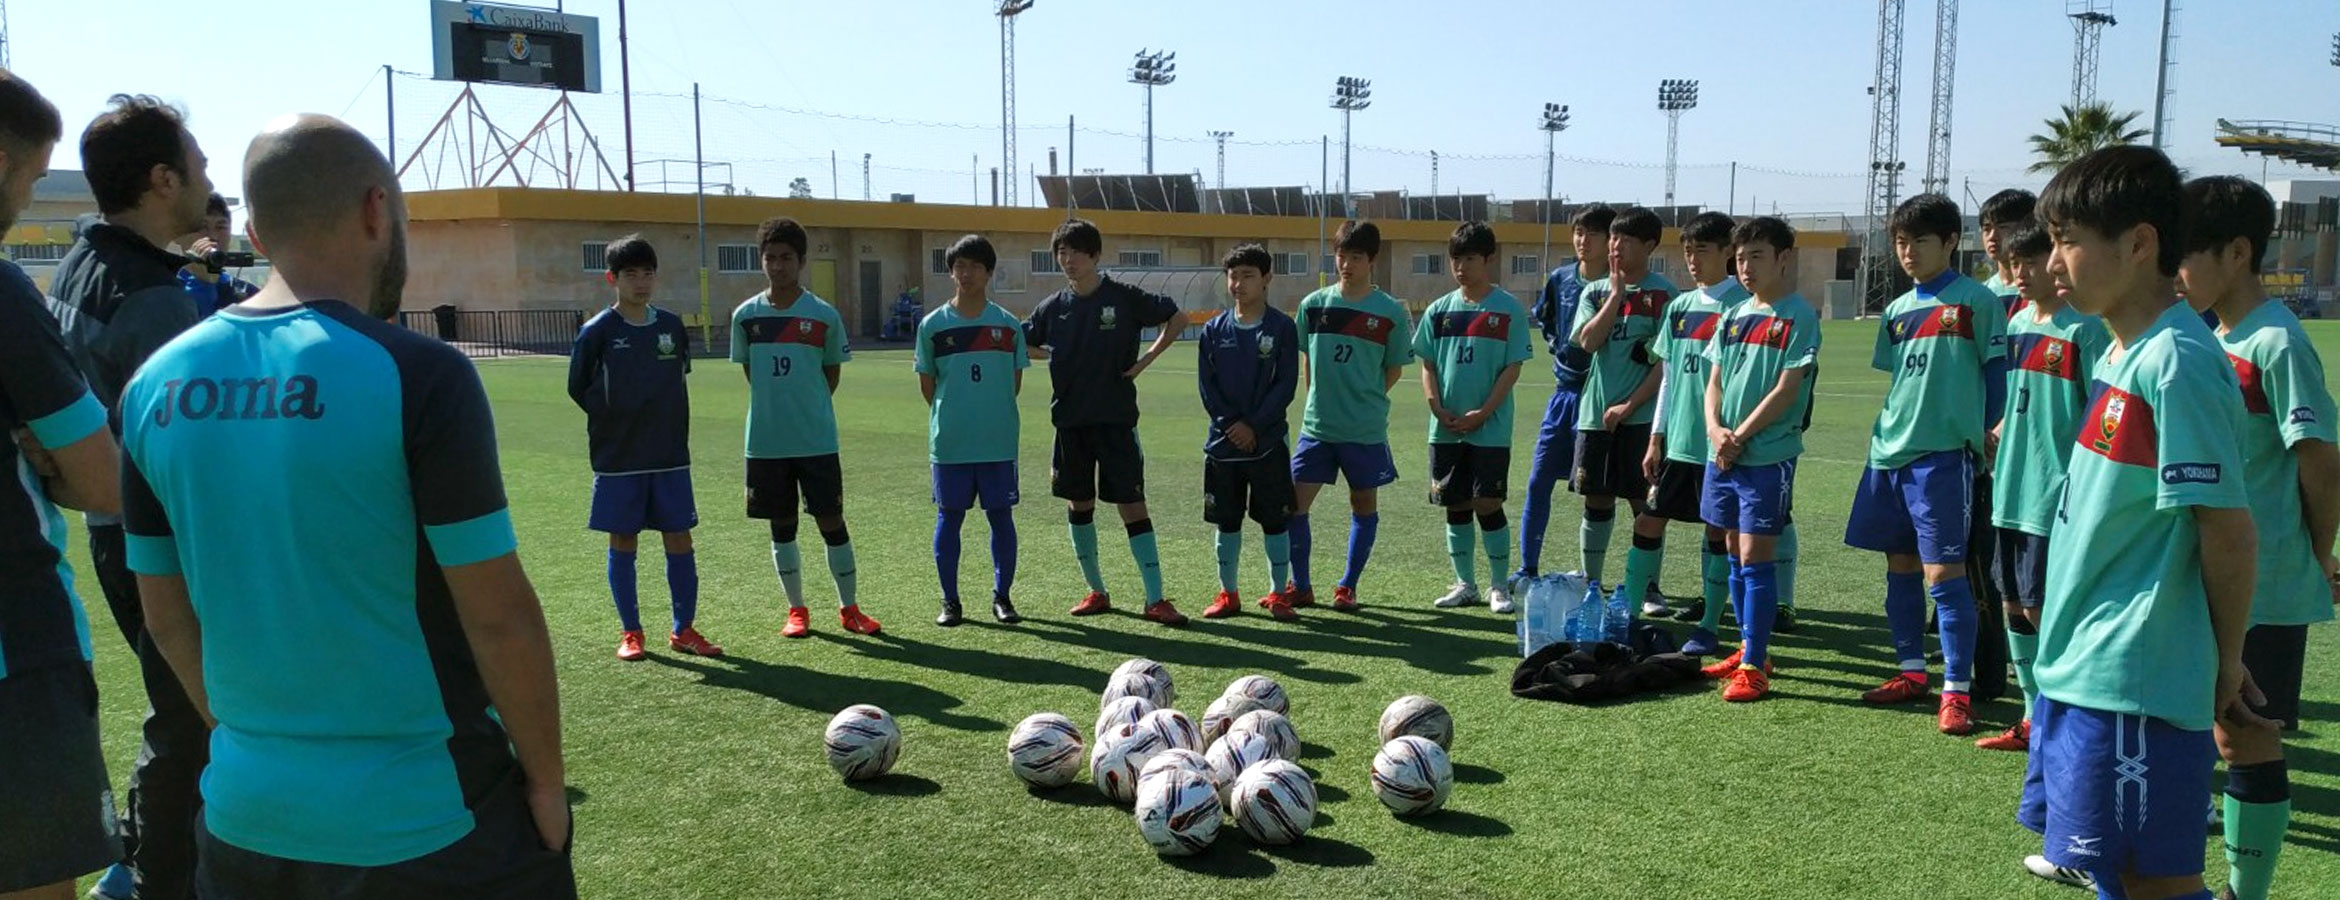 EL SCH FOOTBALL CLUB COMPLETA SU TRAINING CAMP